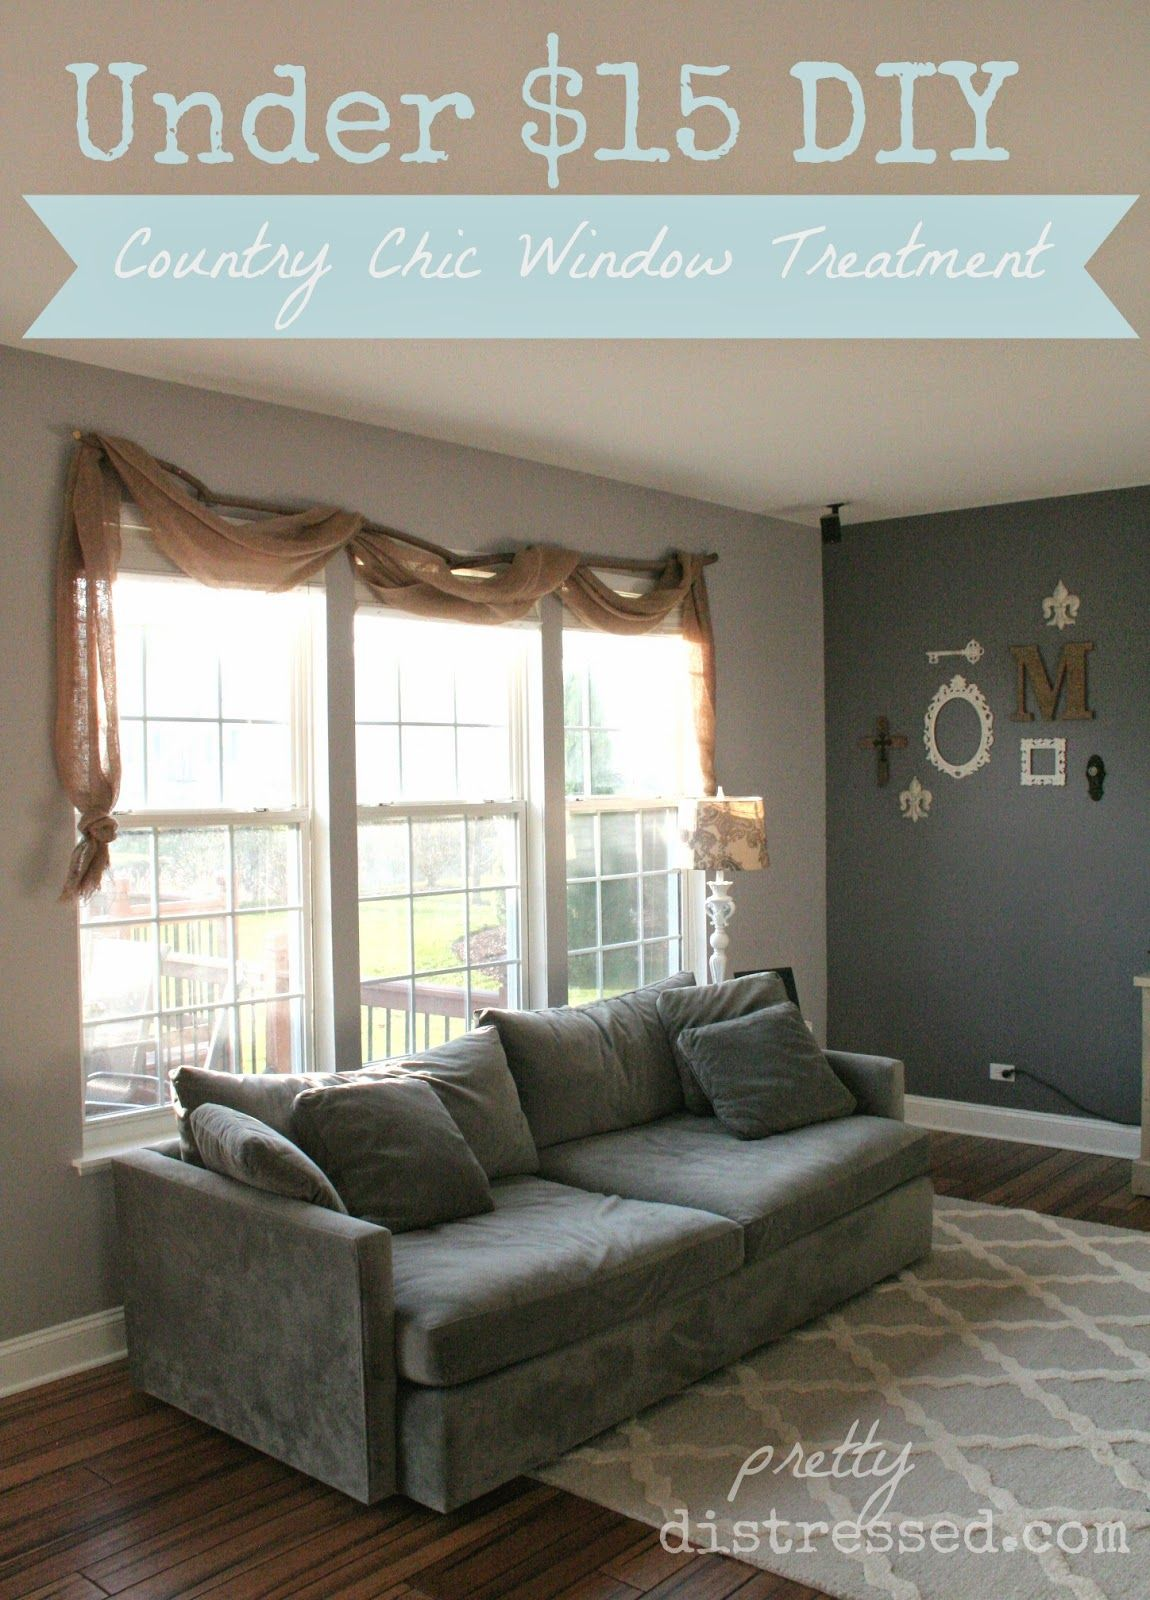 Burlap window treatments - Learn How To Make A Diy Country Chic Window Treatment For Under 15 Burlap Window